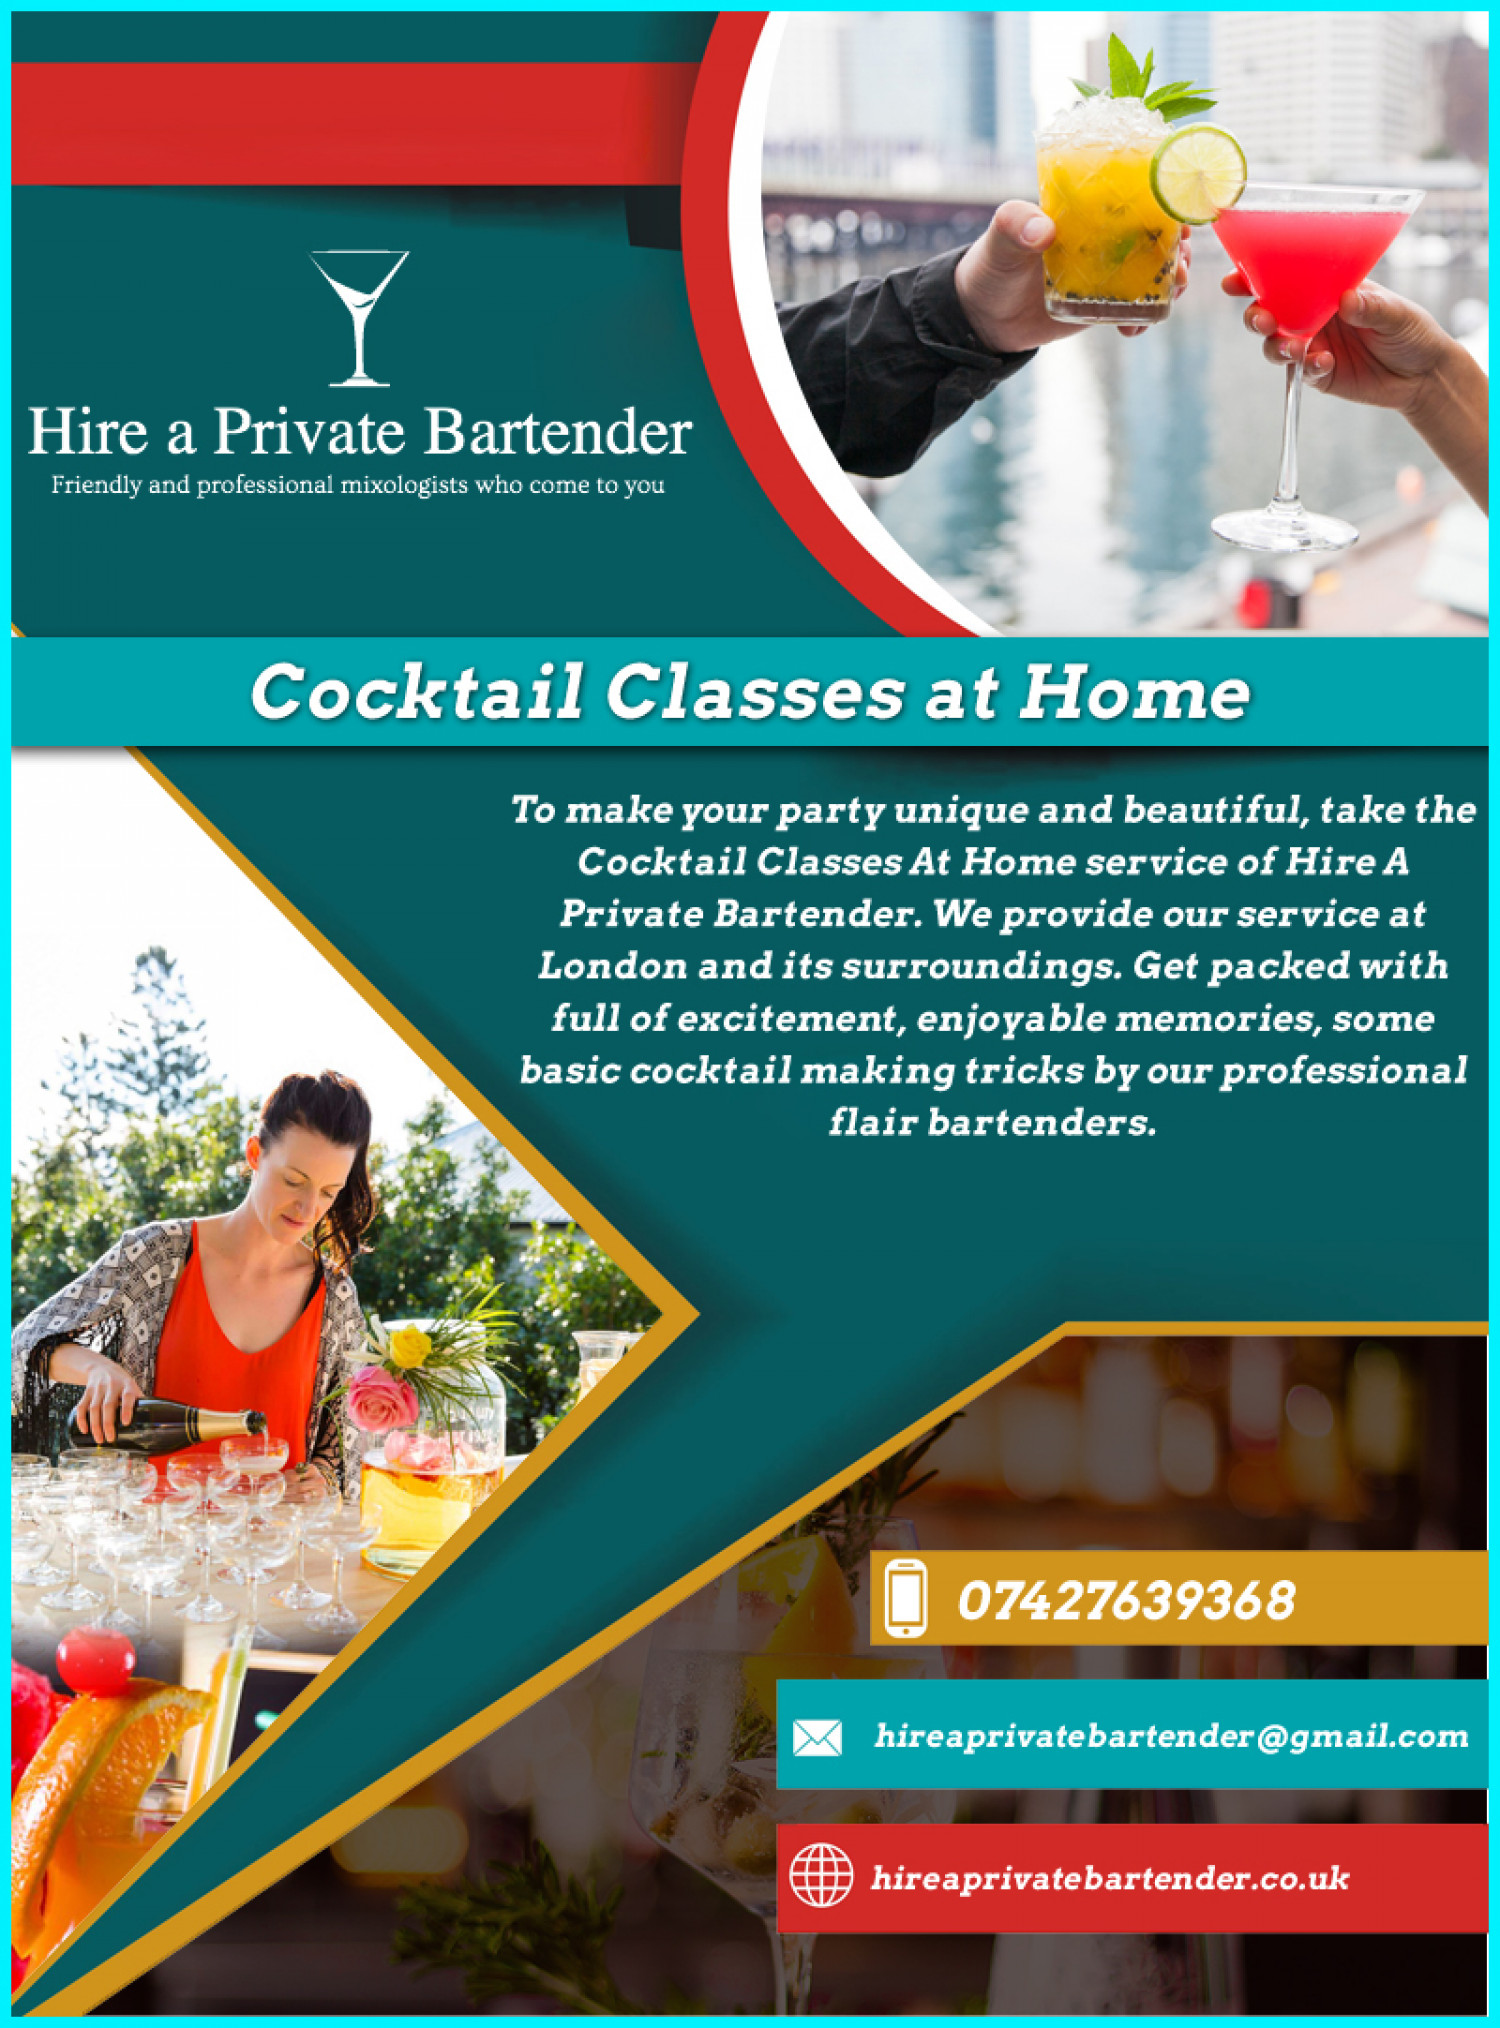 Cocktail Classes at Home- Best Service Ever Infographic